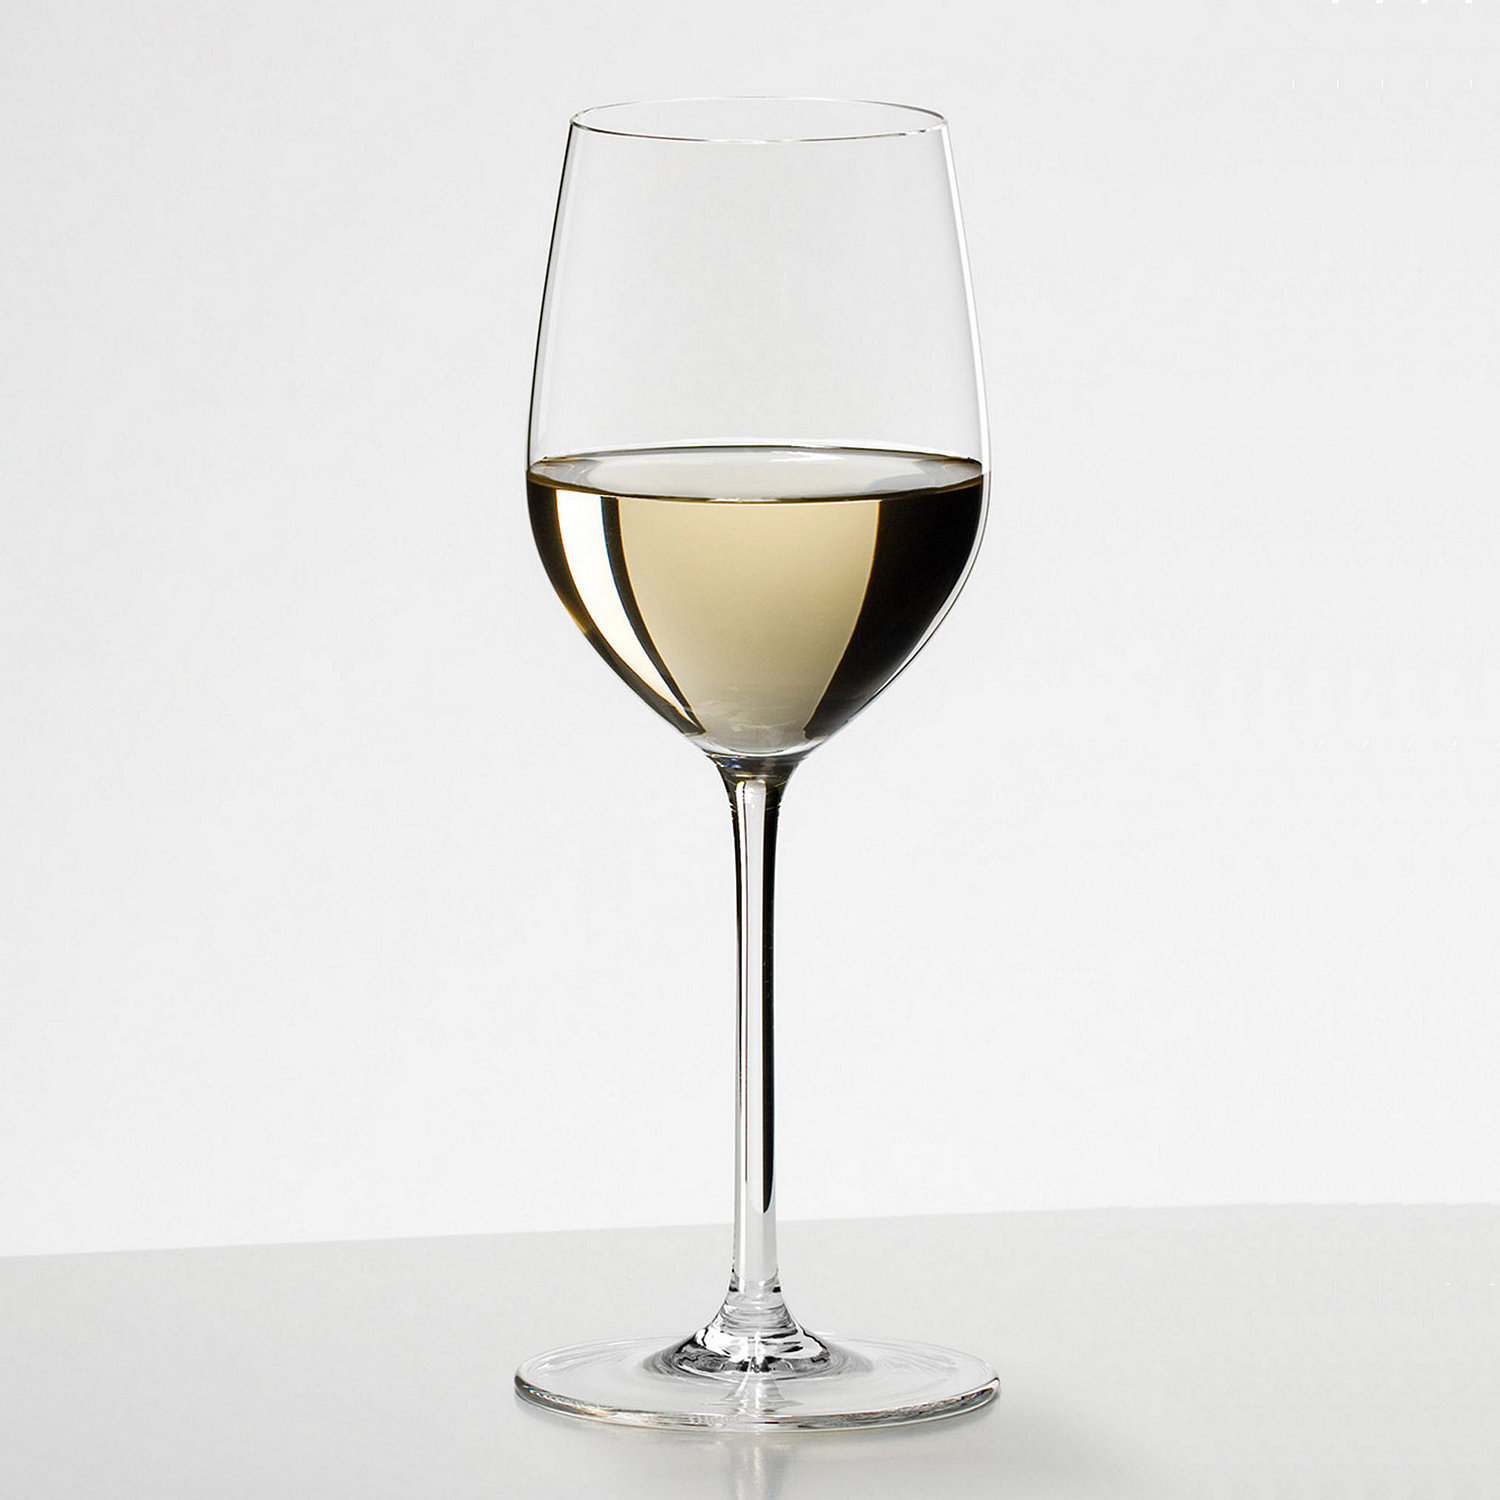 Chardonnay Wine Glass Riedel Sommeliers Chardonnay Wine Glass 1